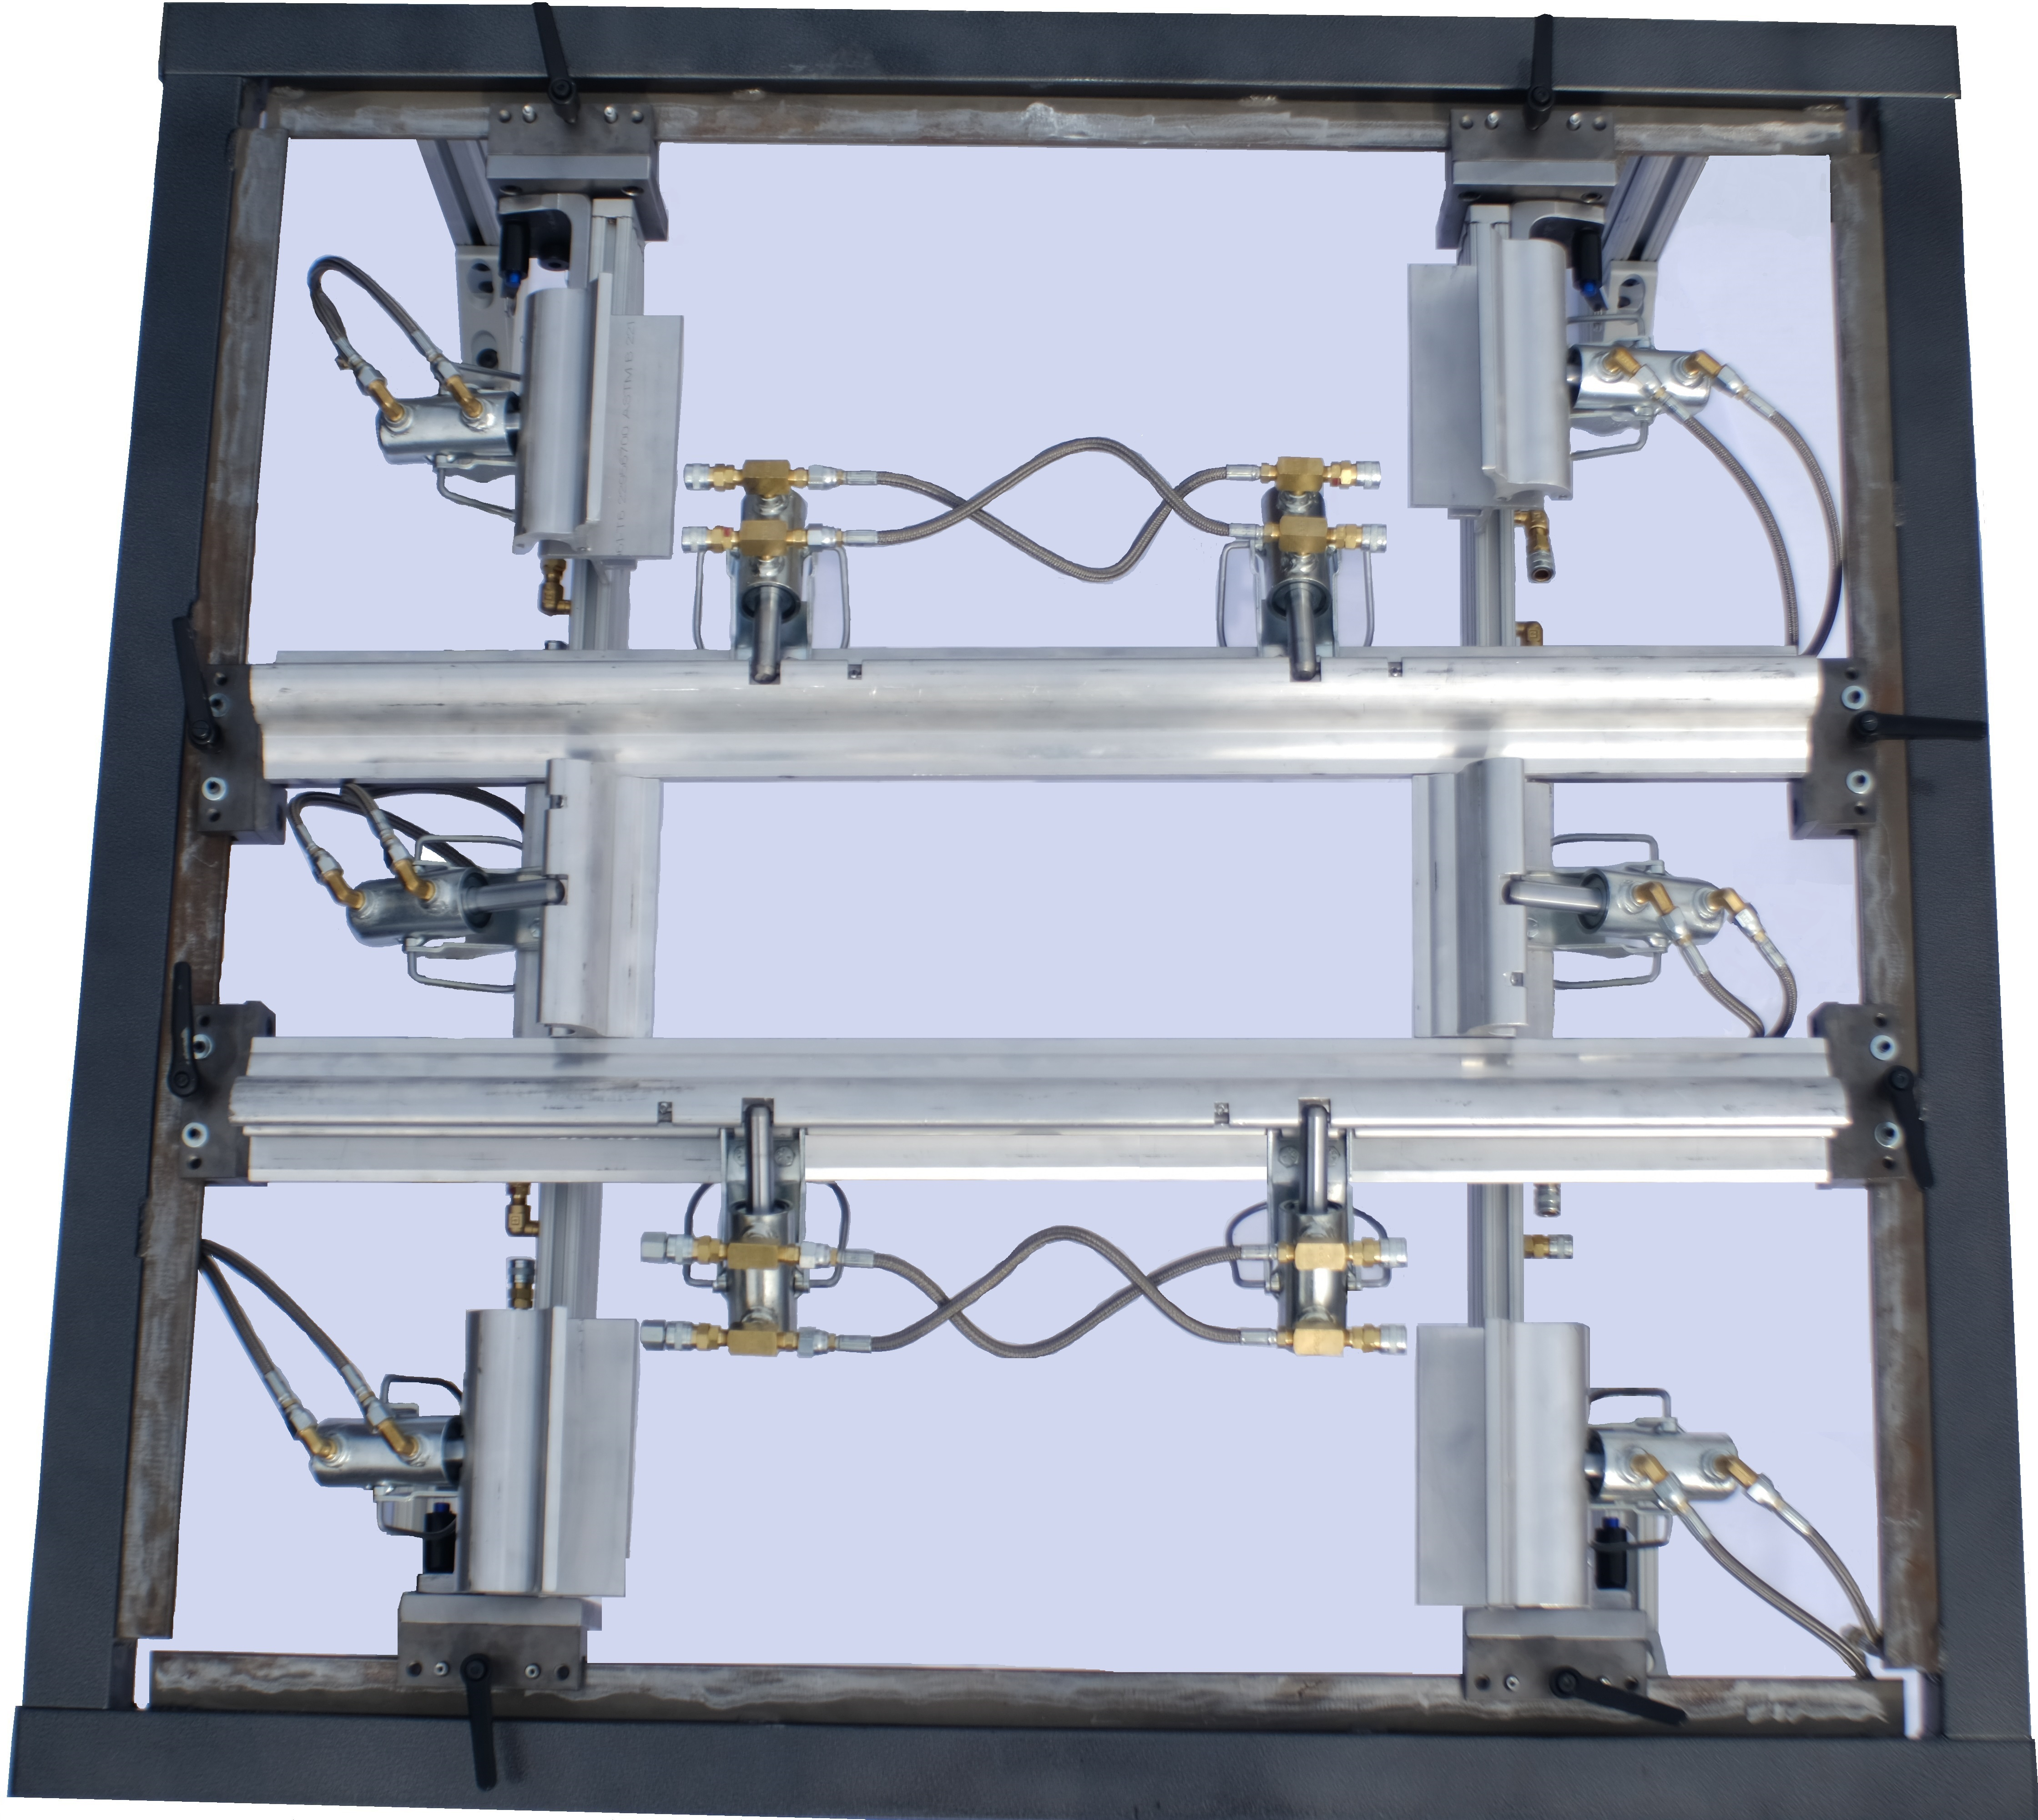 2017 Quick Change Clamp Frame for Smaller Format Machines